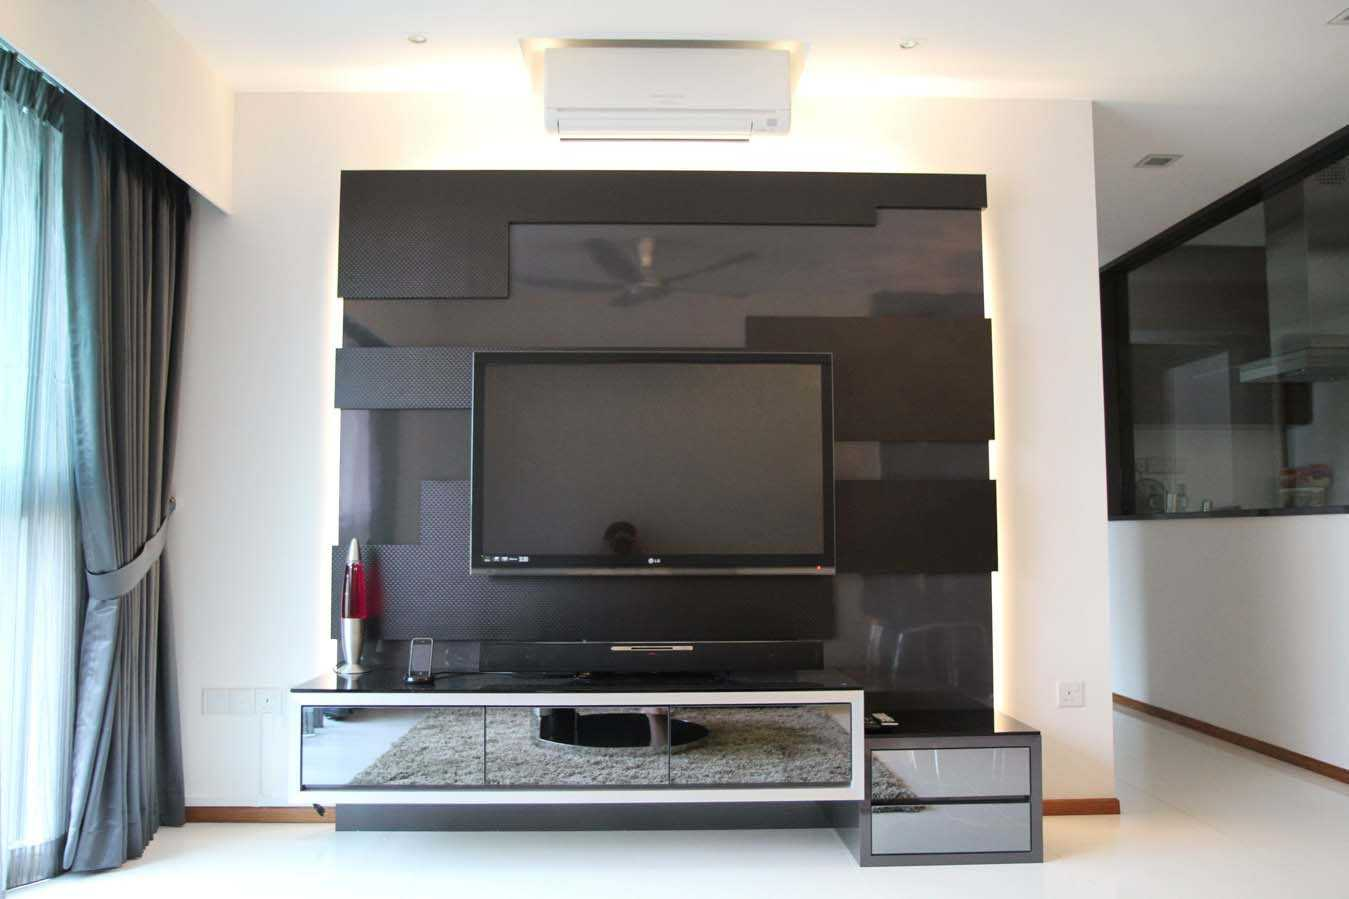 20 modern tv unit design ideas for bedroom living room Dresser designs for small space